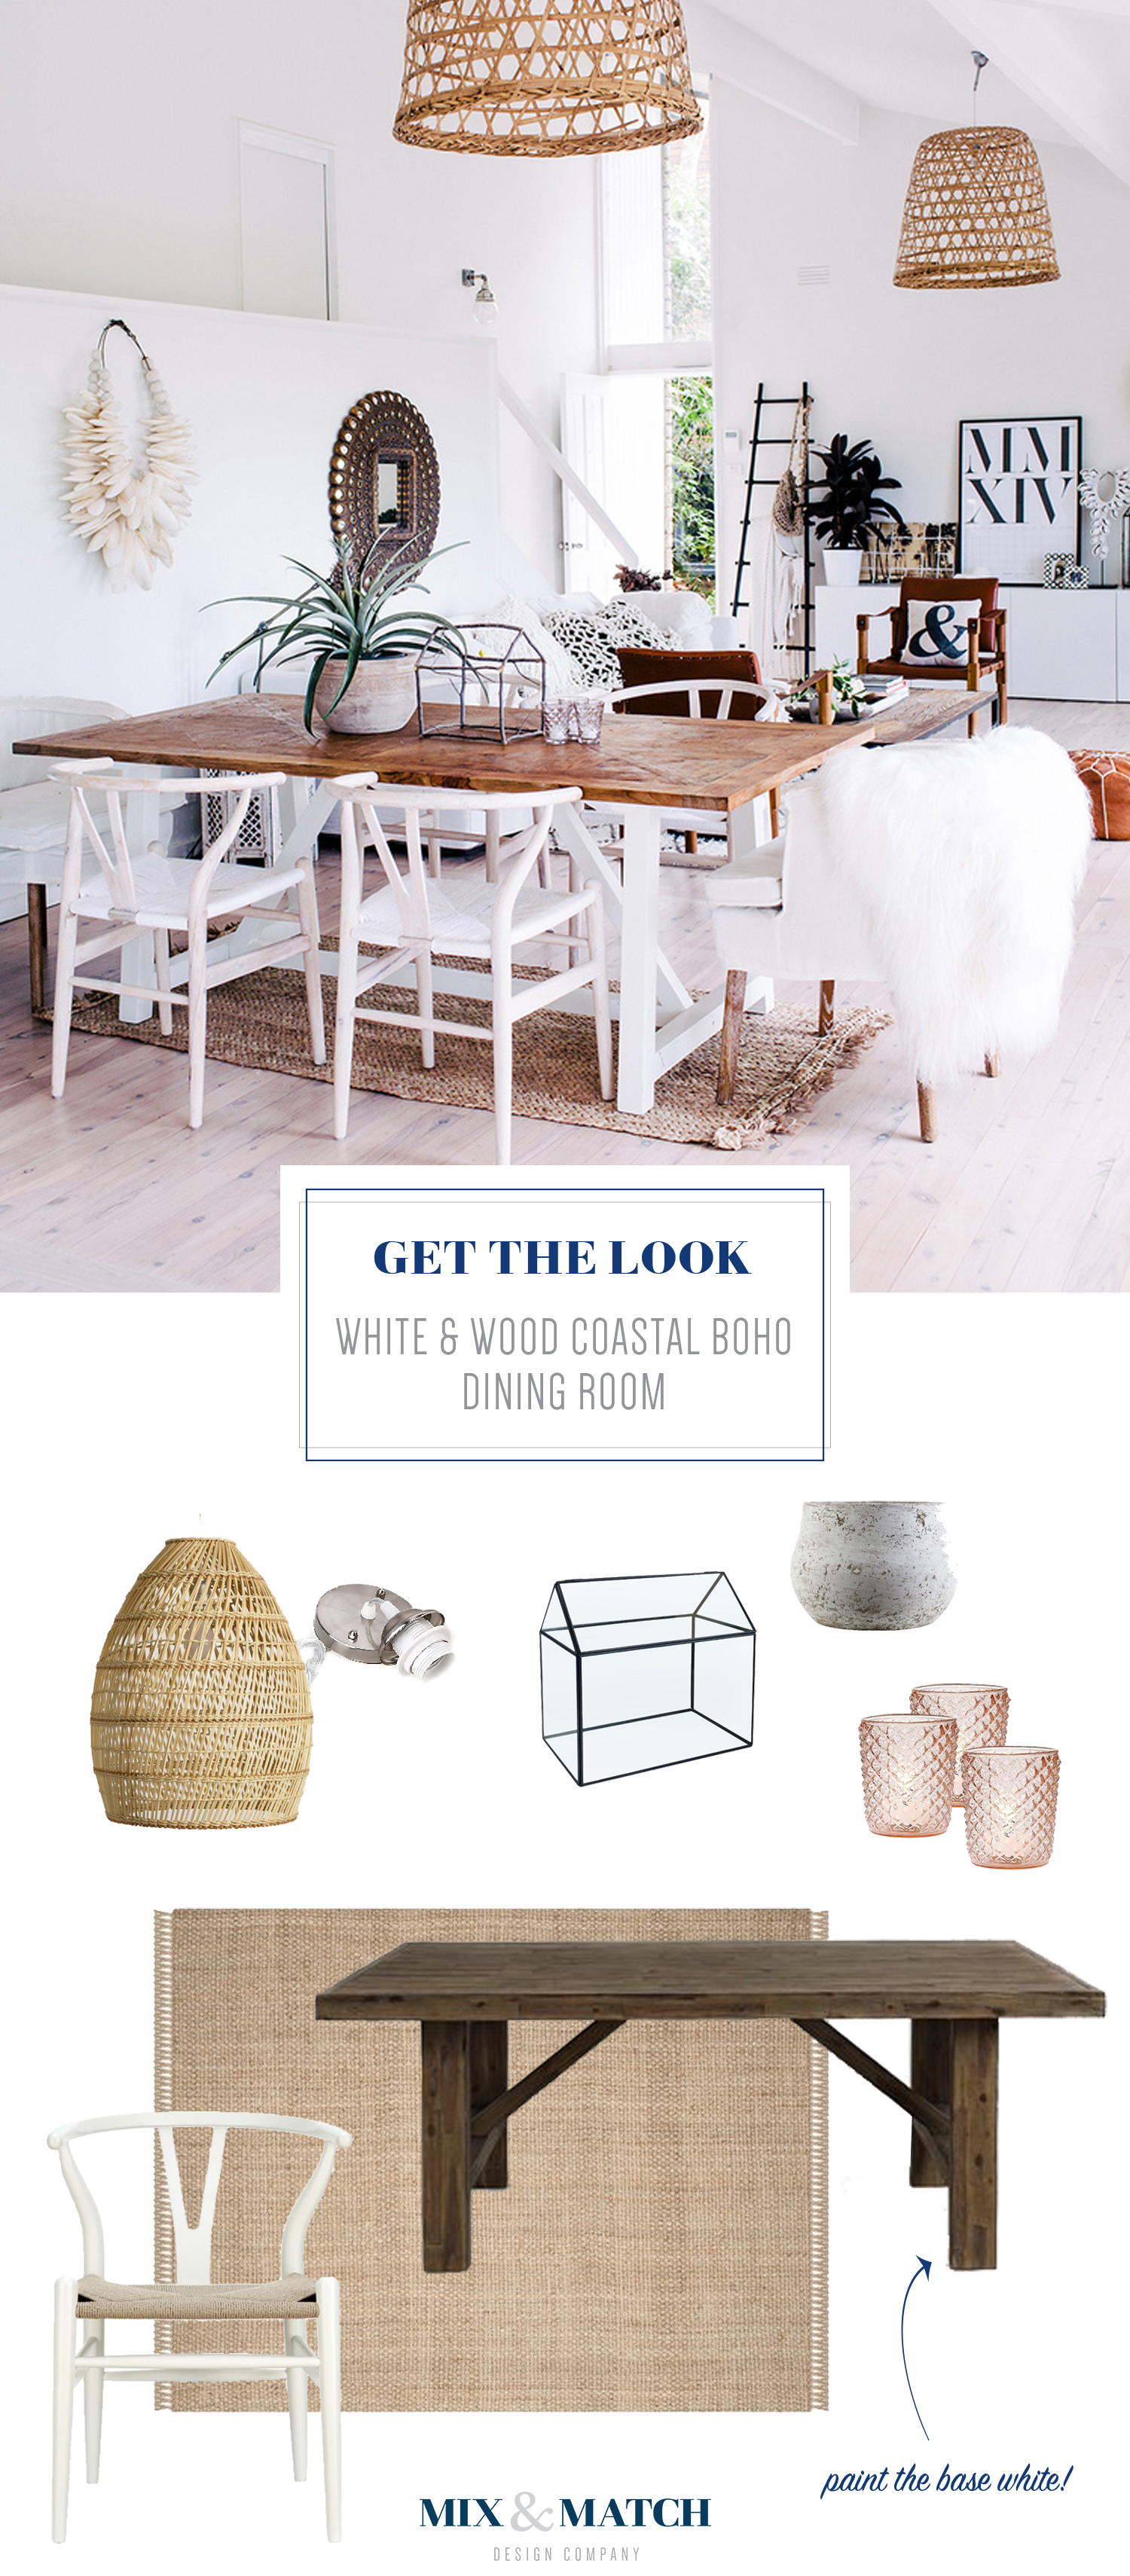 Get the look of this beautiful white and wood coastal boho dining room from Adore Magazine.